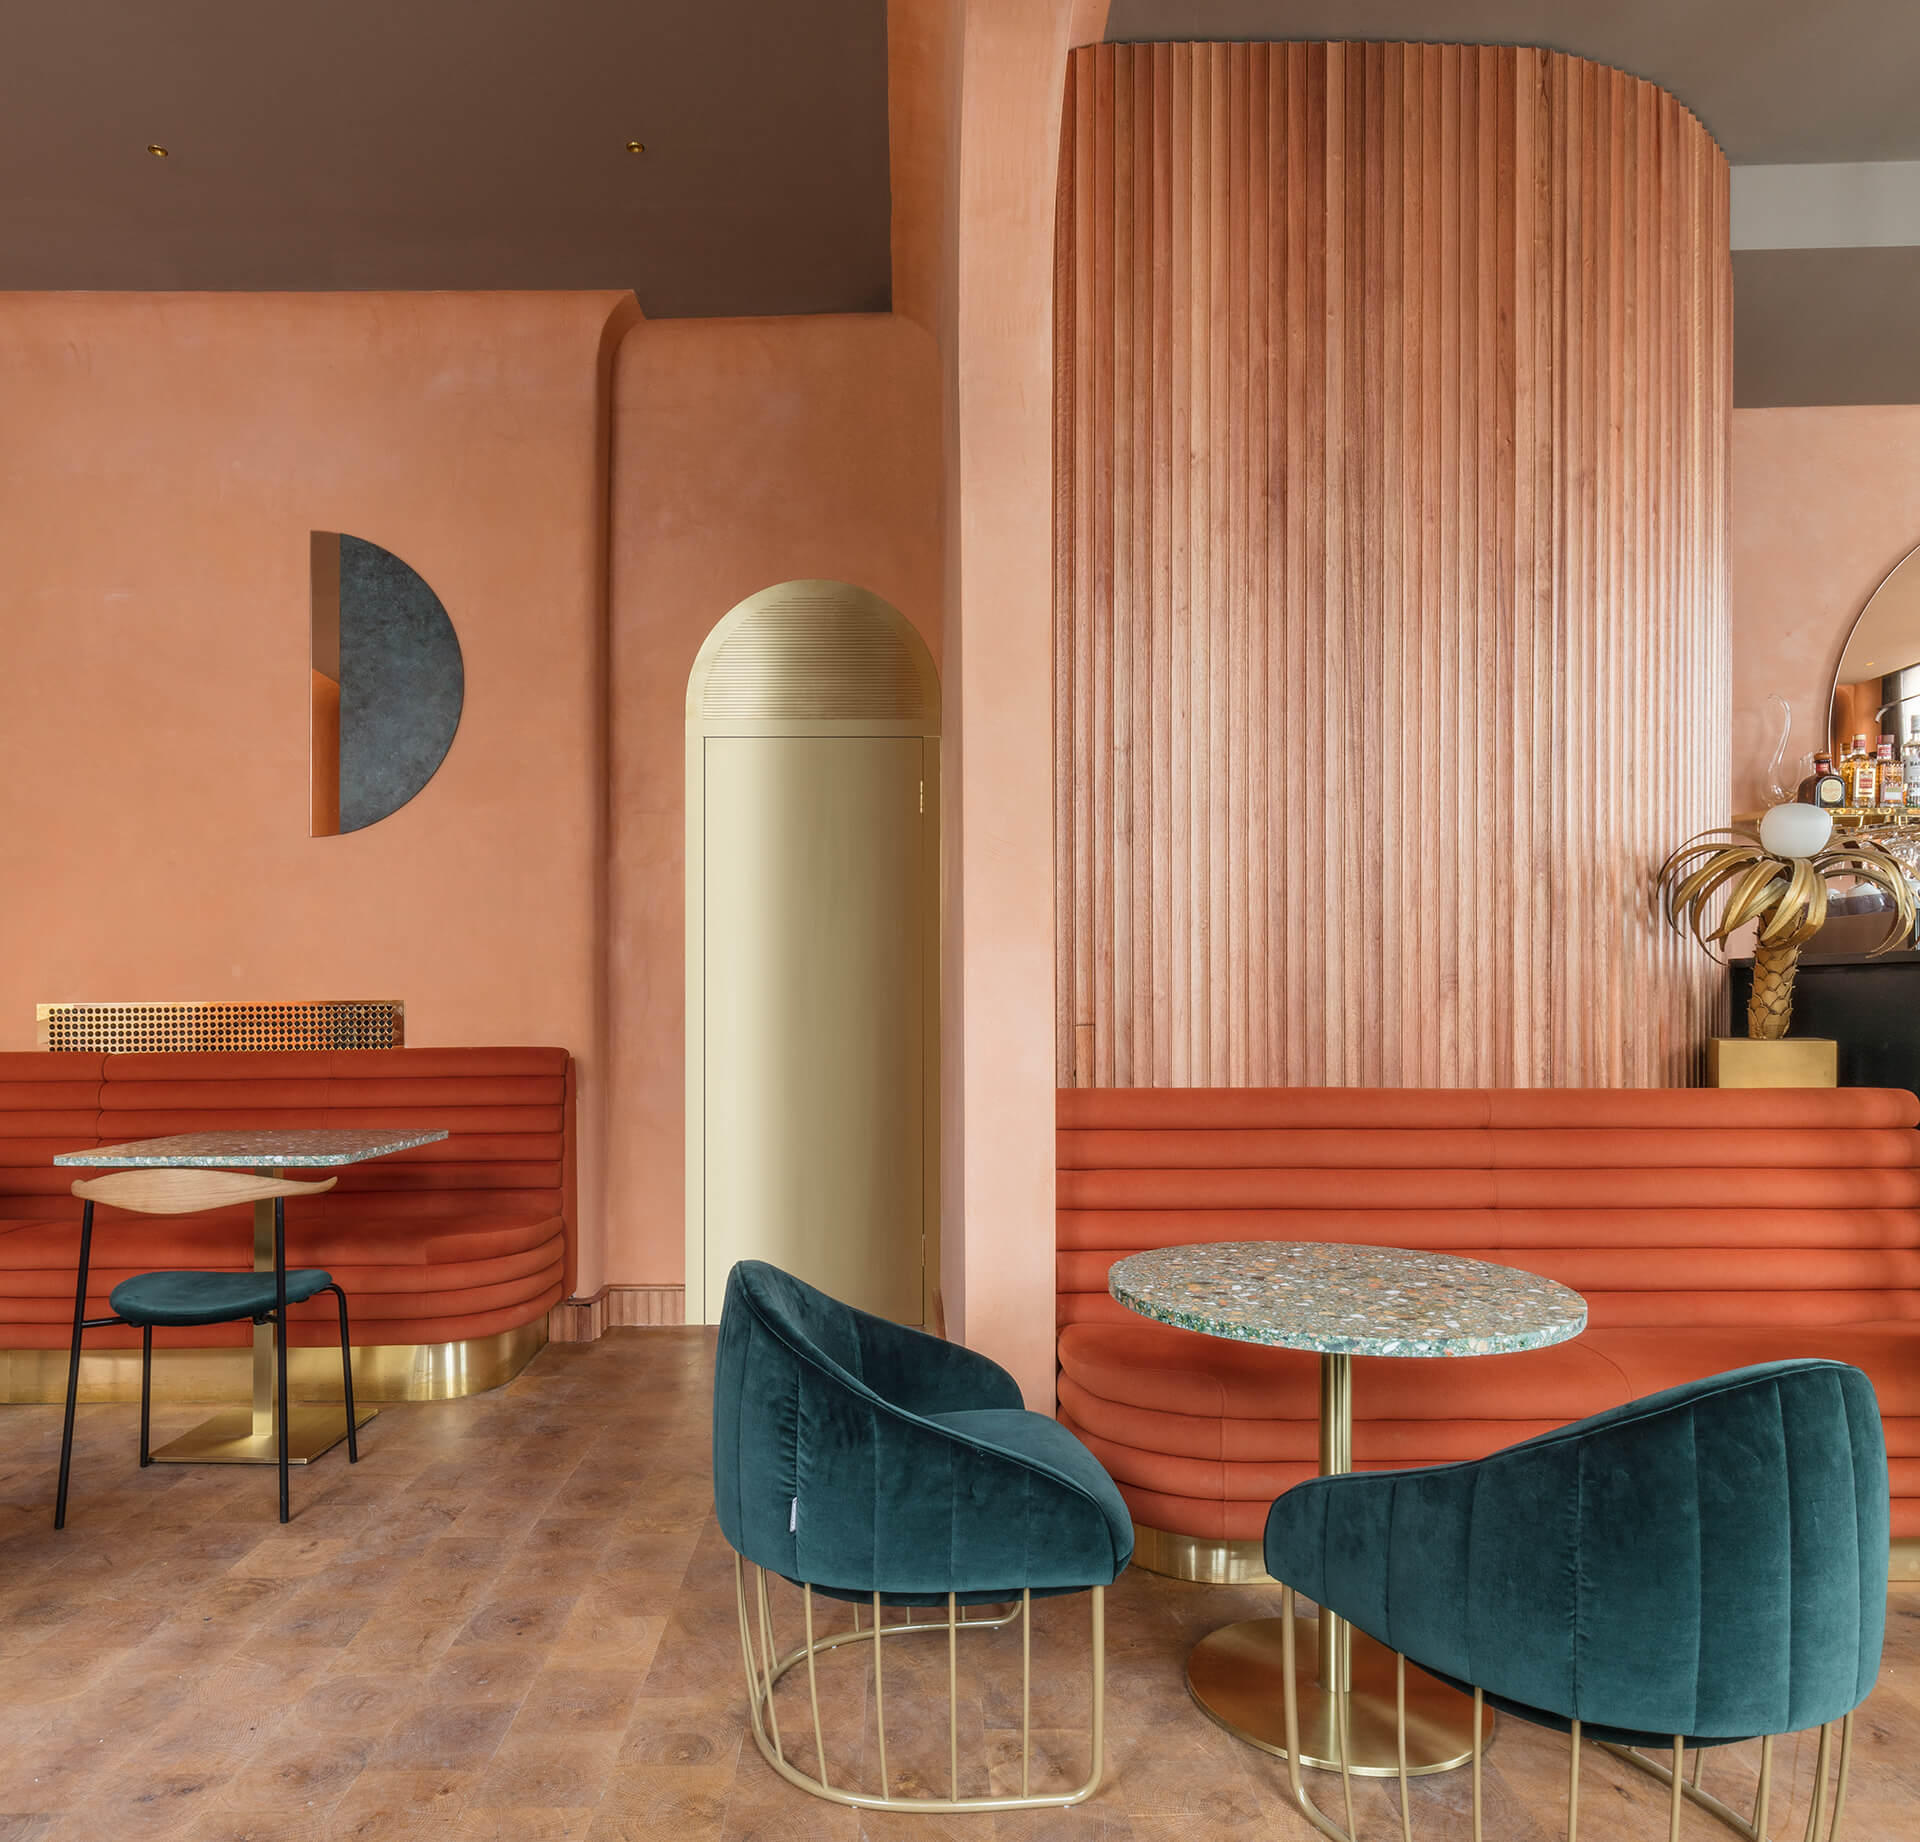 Frame Sella Concept Transcends Local Context With The Palette Of The Mediterranean Sun